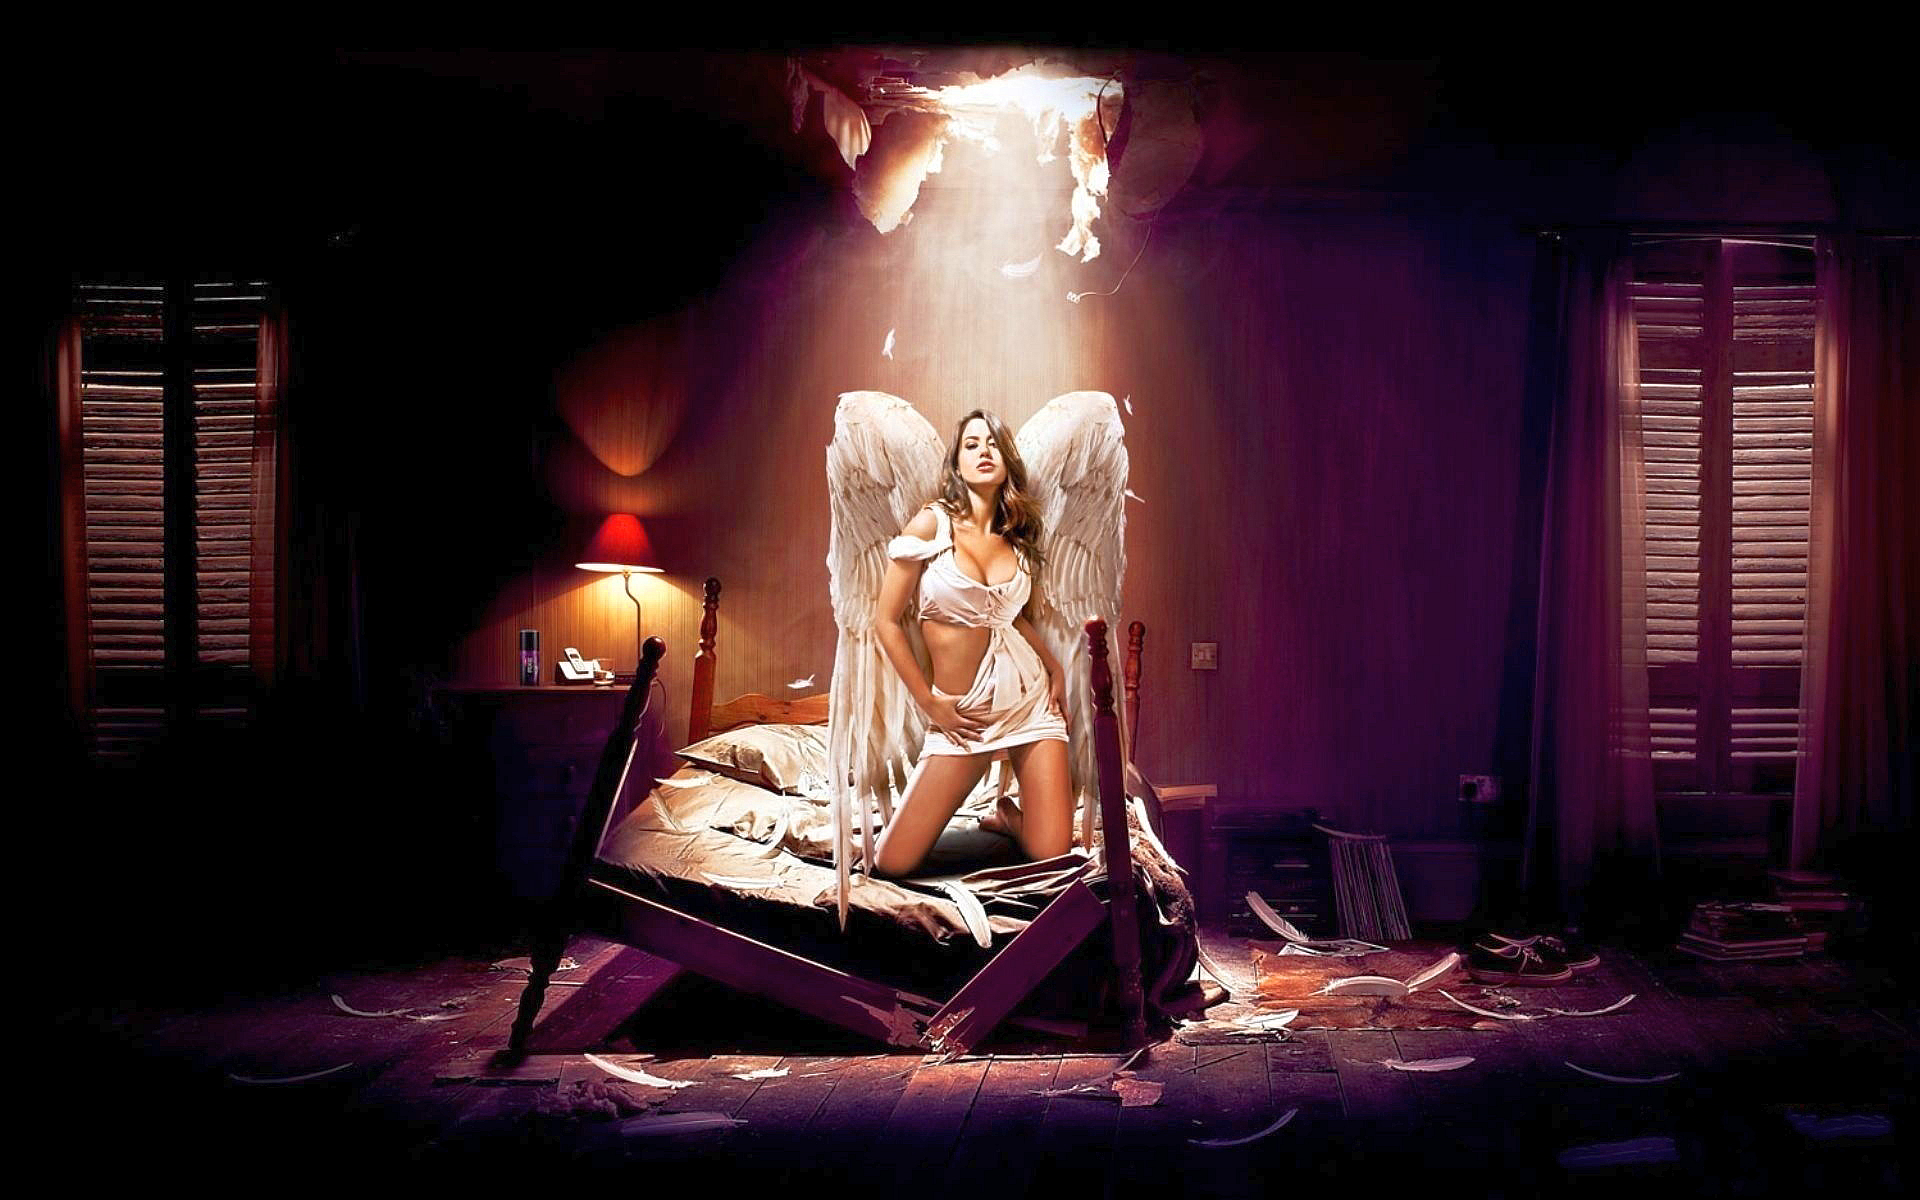 Fallen hot angel